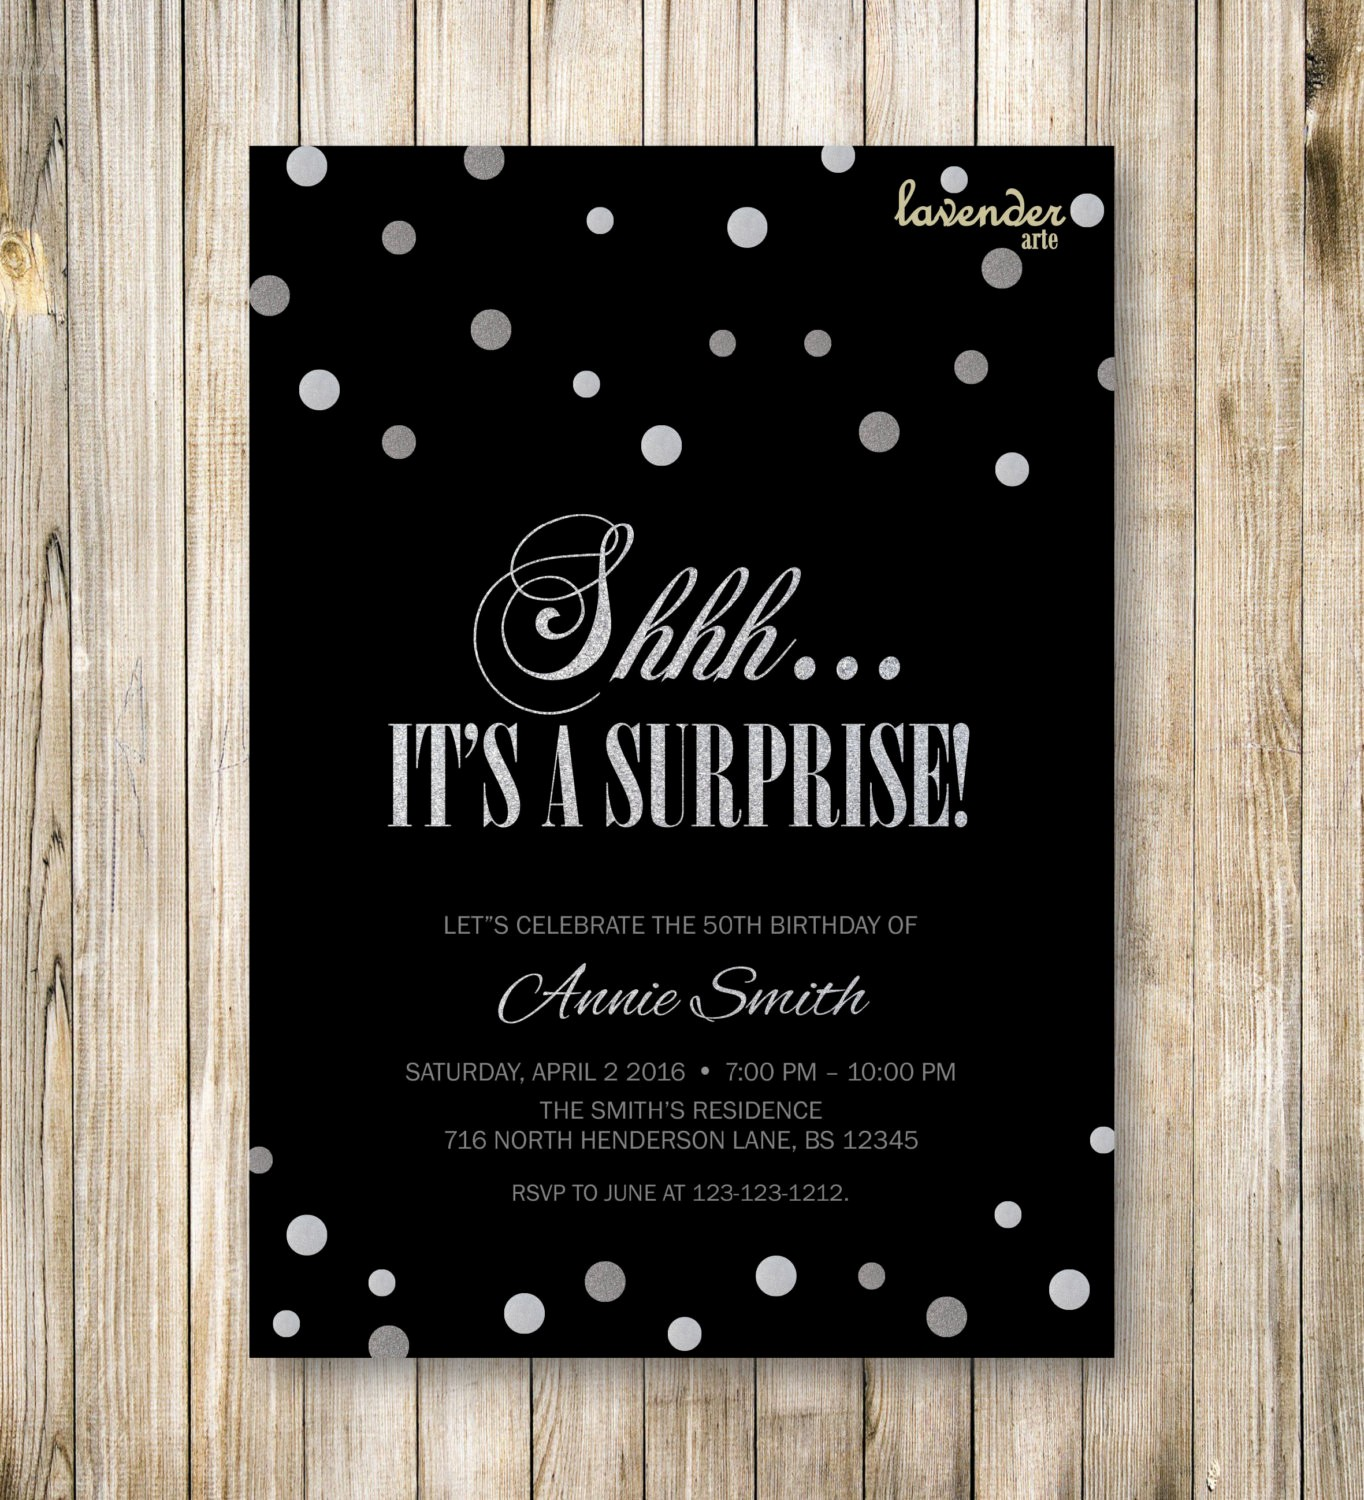 Surprise Birthday Party Invitation Template Fresh Shhh It S A Surprise Birthday Party Invitation Surprise